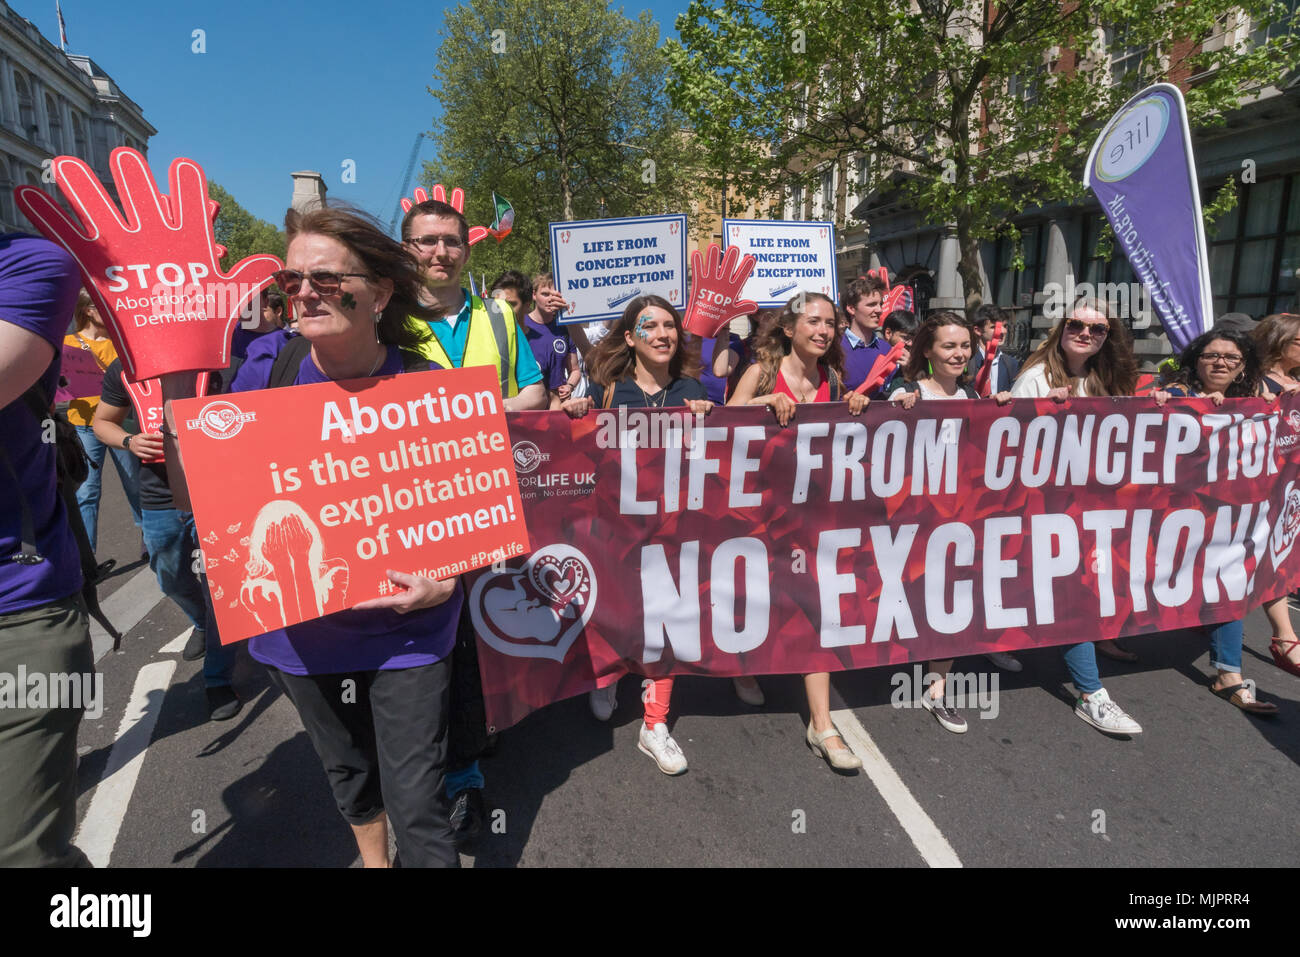 London, UK. 5th May 2018. The March for Life UK, a largely Catholic event calling for an end to abortions marches down Whitehall to a rally in Parliament Square. Opposed to abortion they aim to raise awareness of the hurt and damage that abortion causes and to unite all the pro-life groups in the UK to help bring to an end what it calls the greatest violation to human rights in history. Credit: Peter Marshall/Alamy Live News Stock Photo